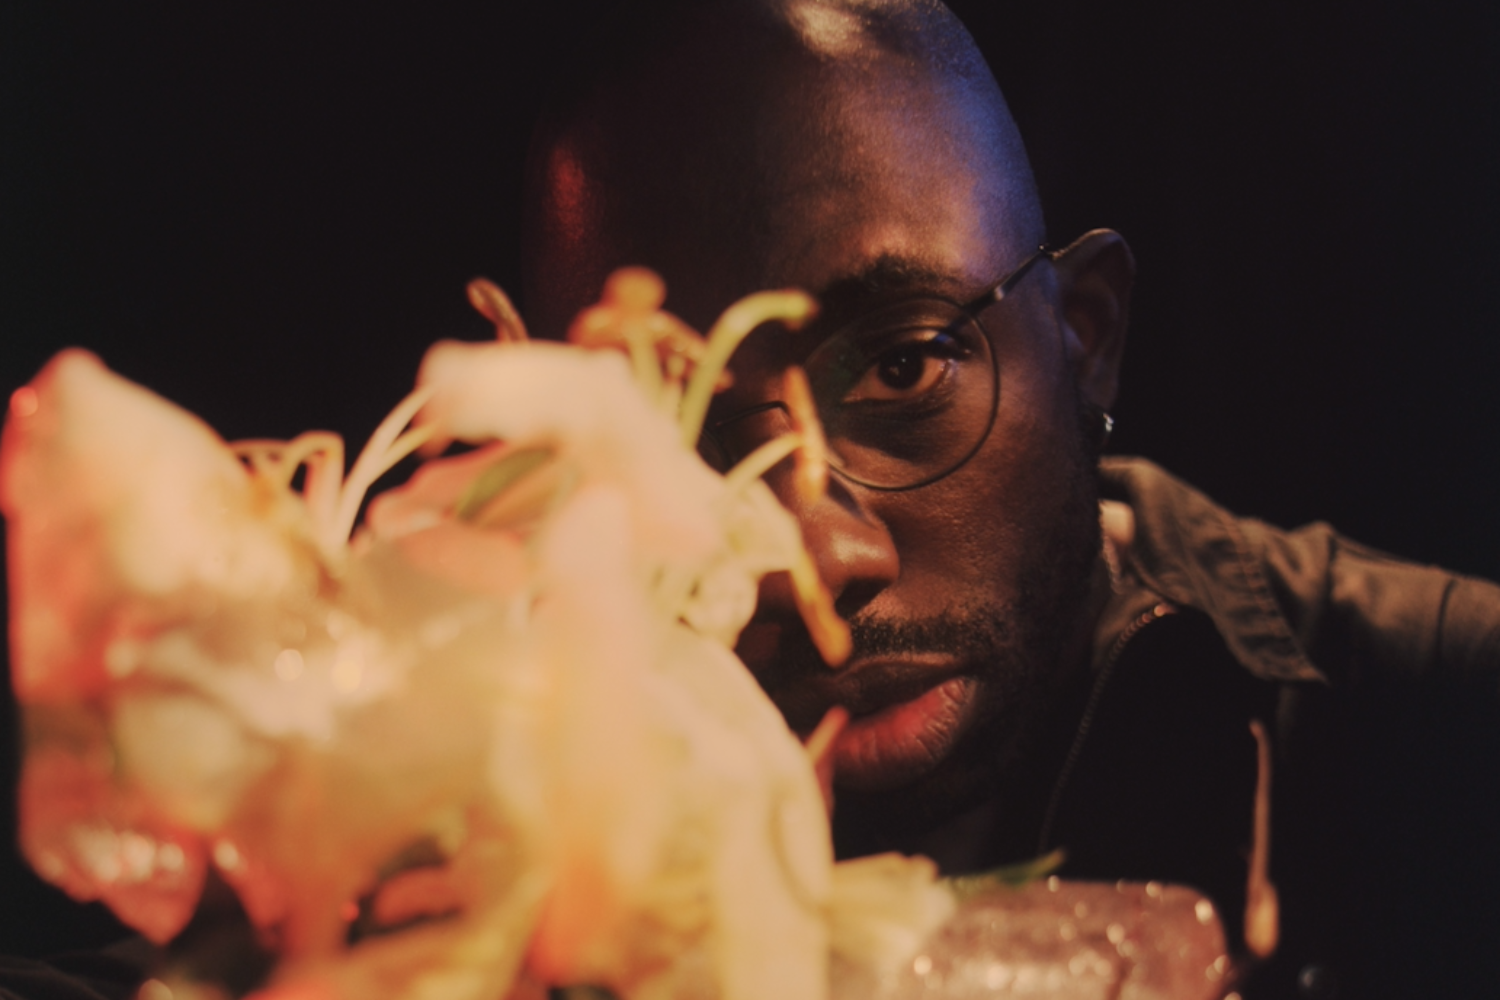 Ghostpoet unveils 'I Grow Tired But Dare Not Fall Asleep' video